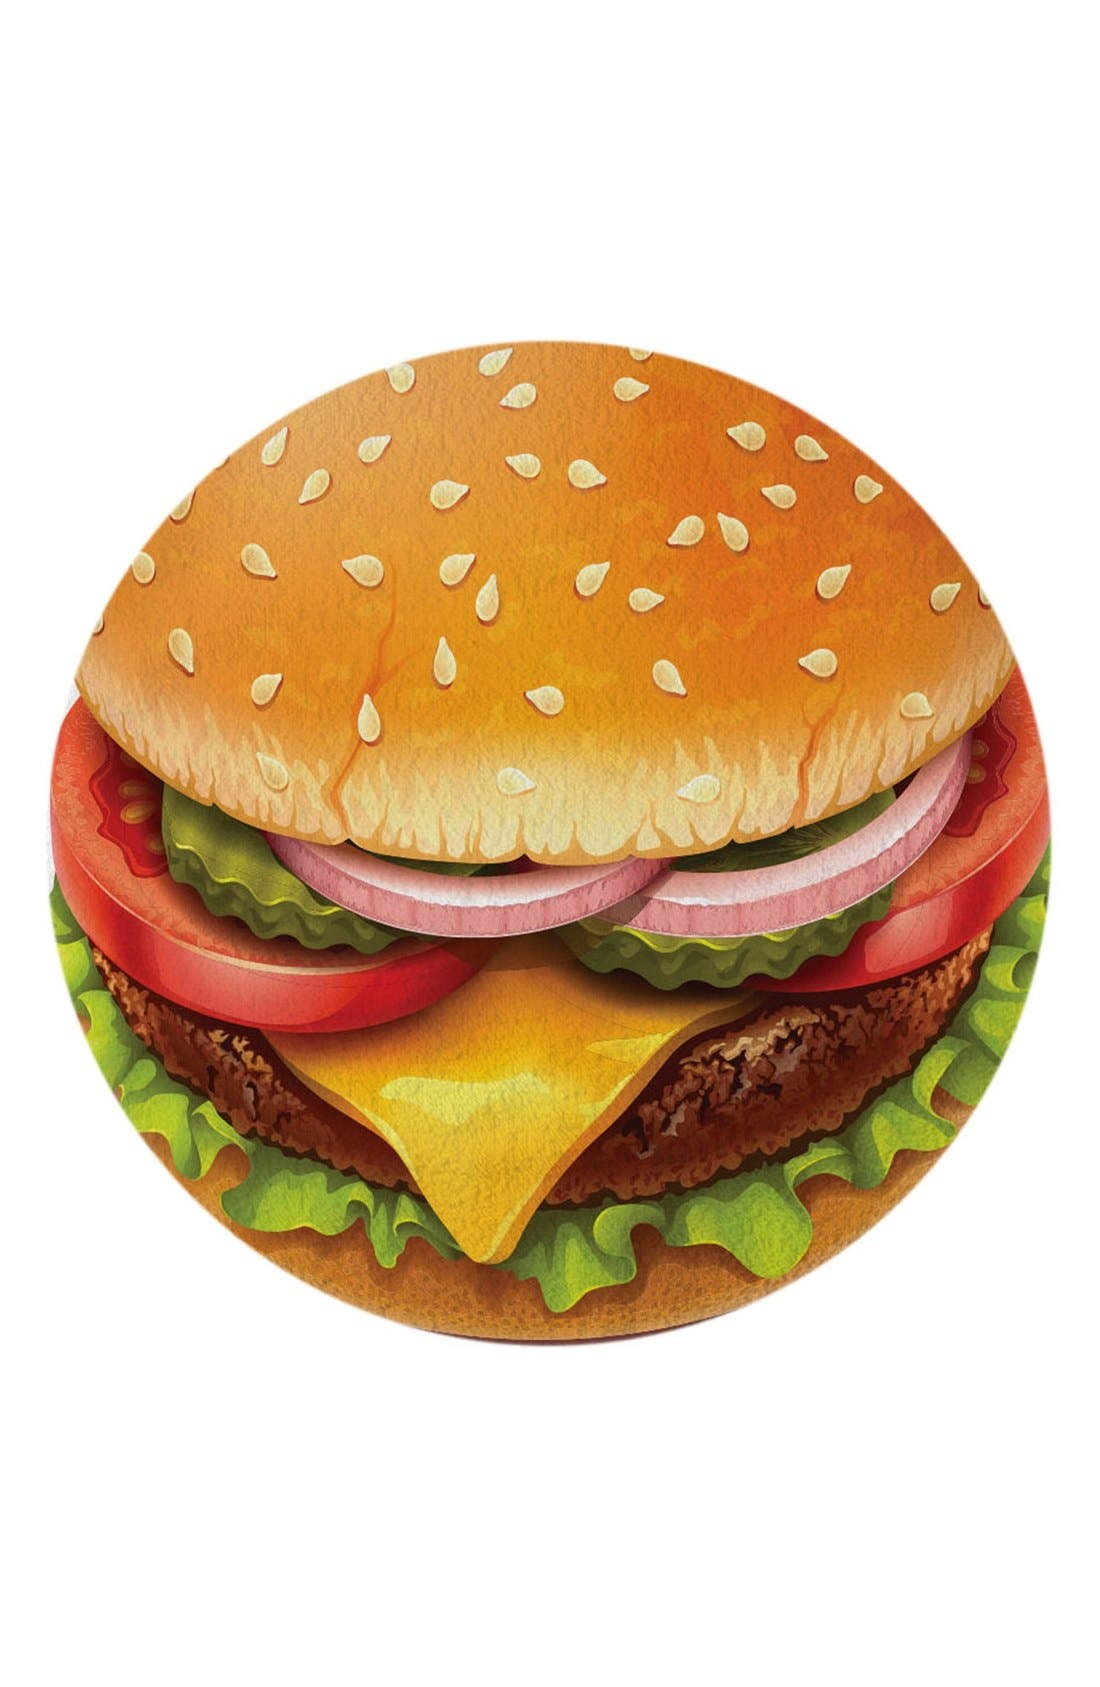 Round Towel Co. 'Cheeseburger' Round Towel